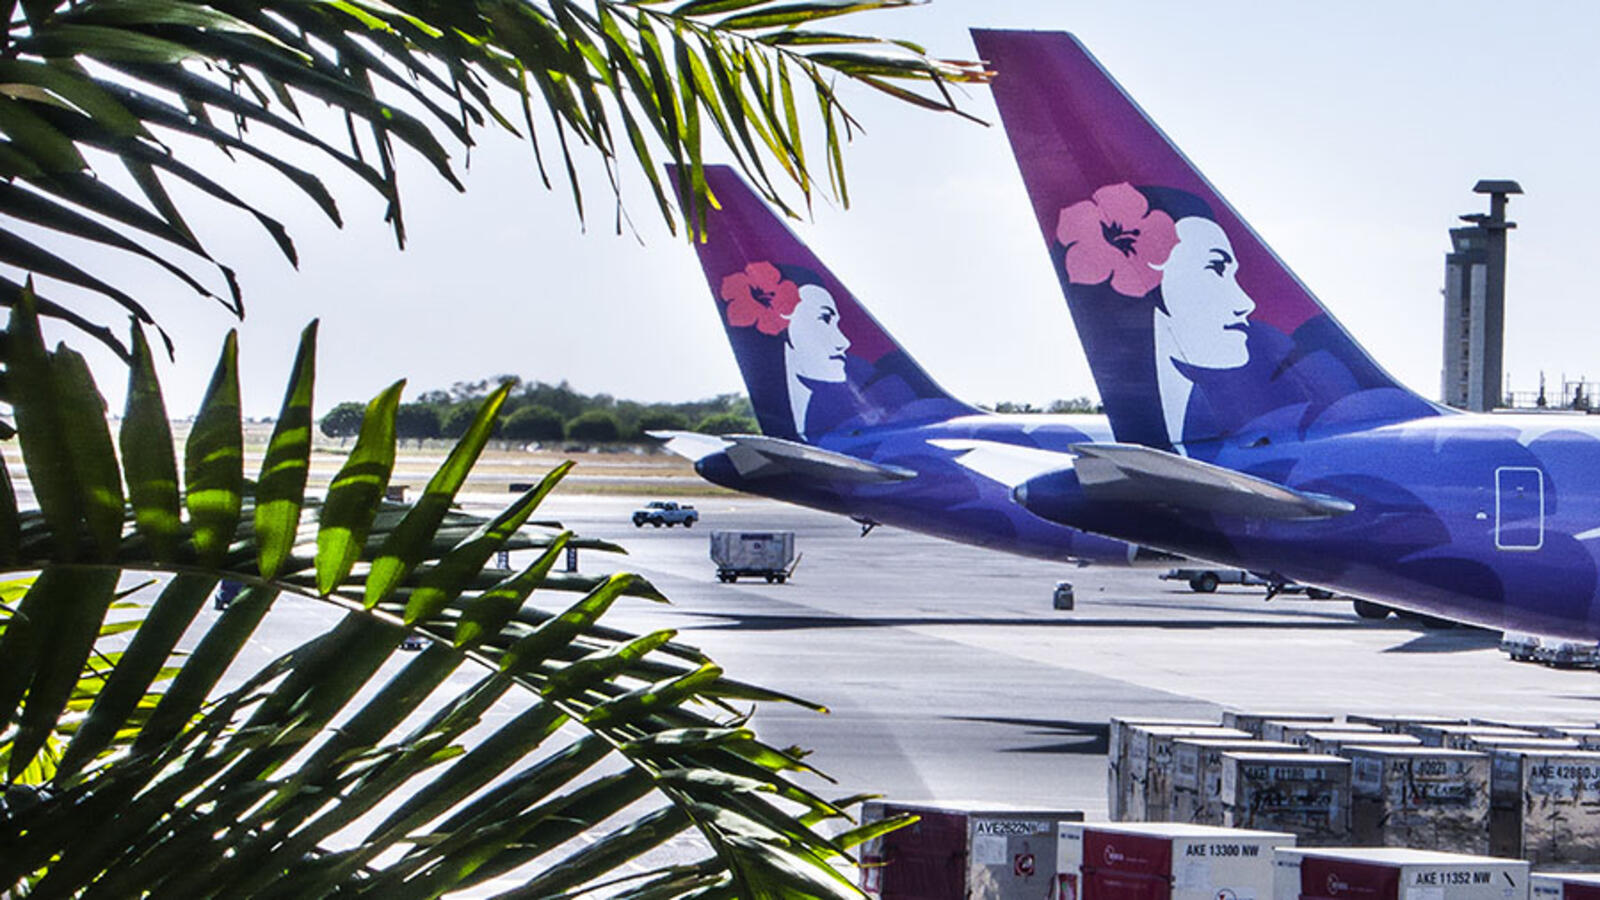 Hawaiian Airlines' In-flight Video Teaches Tourists To Travel Respectfully